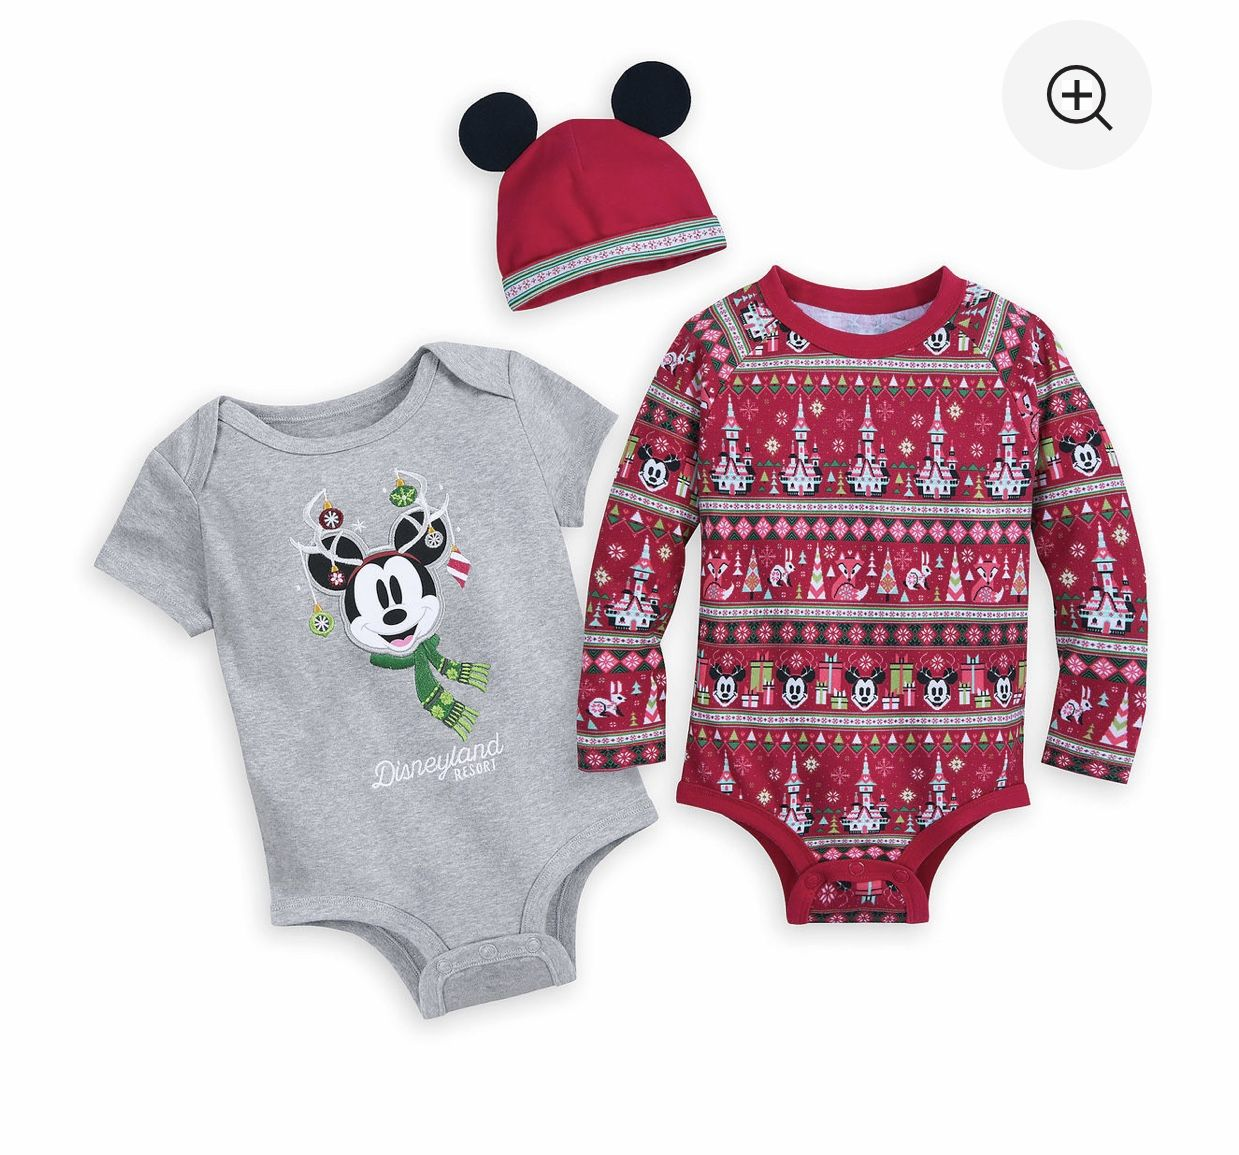 68078de79 Christmas outfits for babies, Mickey Mouse outfits, Disneyland outfit  ideas. Baby Christmas outfit ideas, baby Christmas pj's, Disney Christmas  outfits, ...